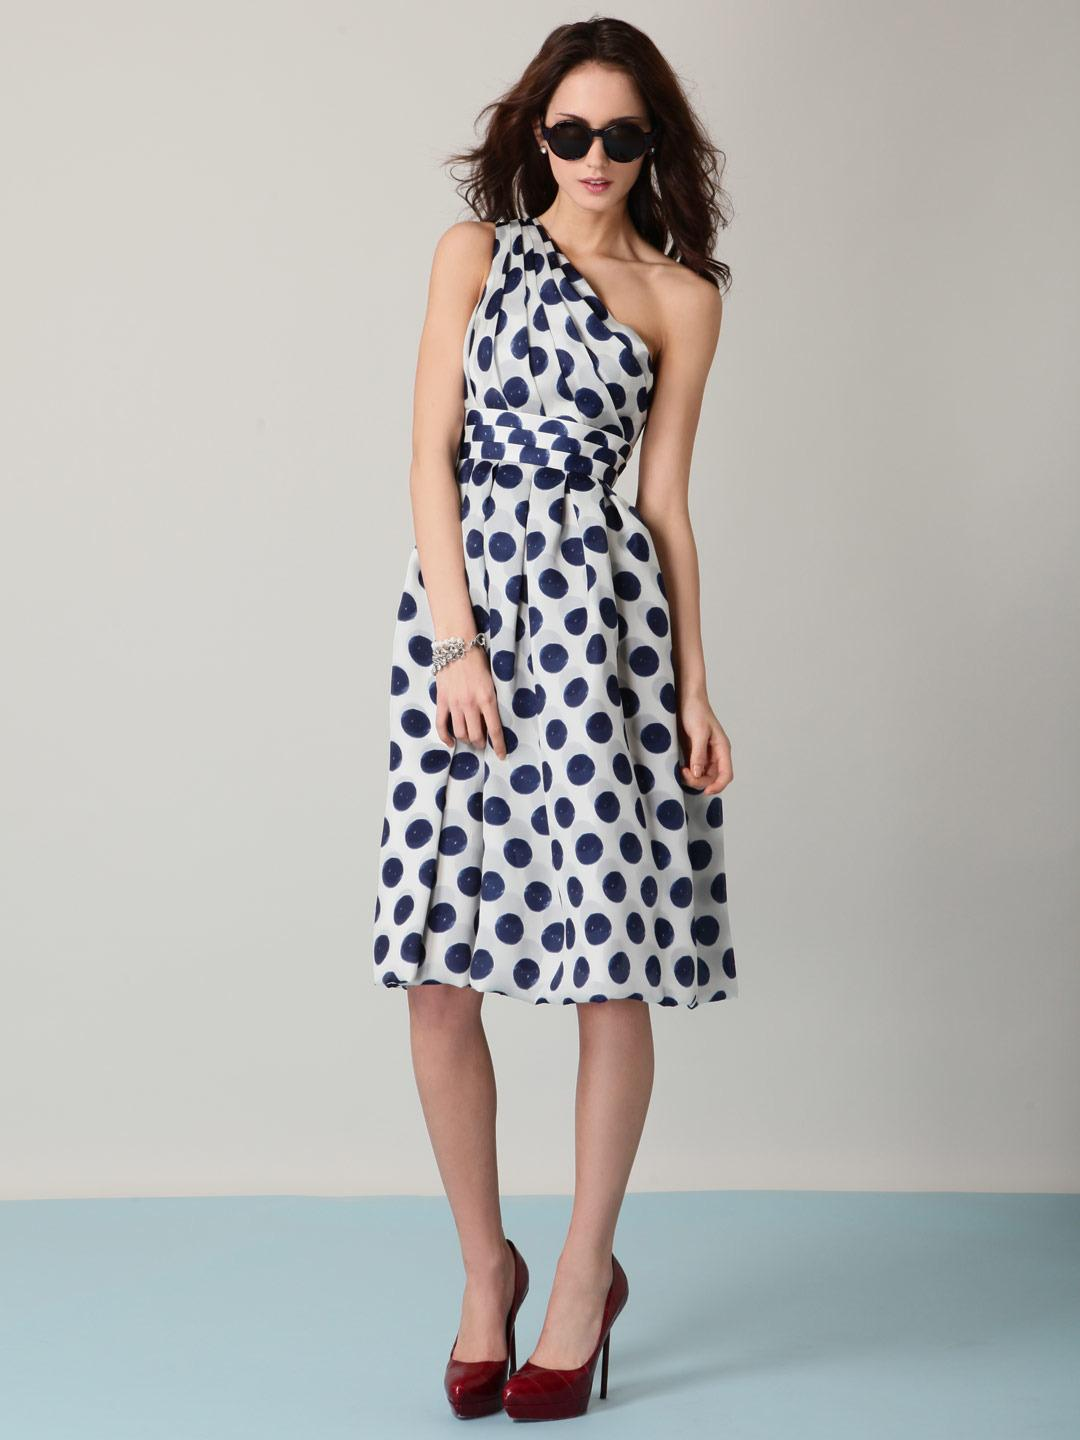 Blue and white polka dot